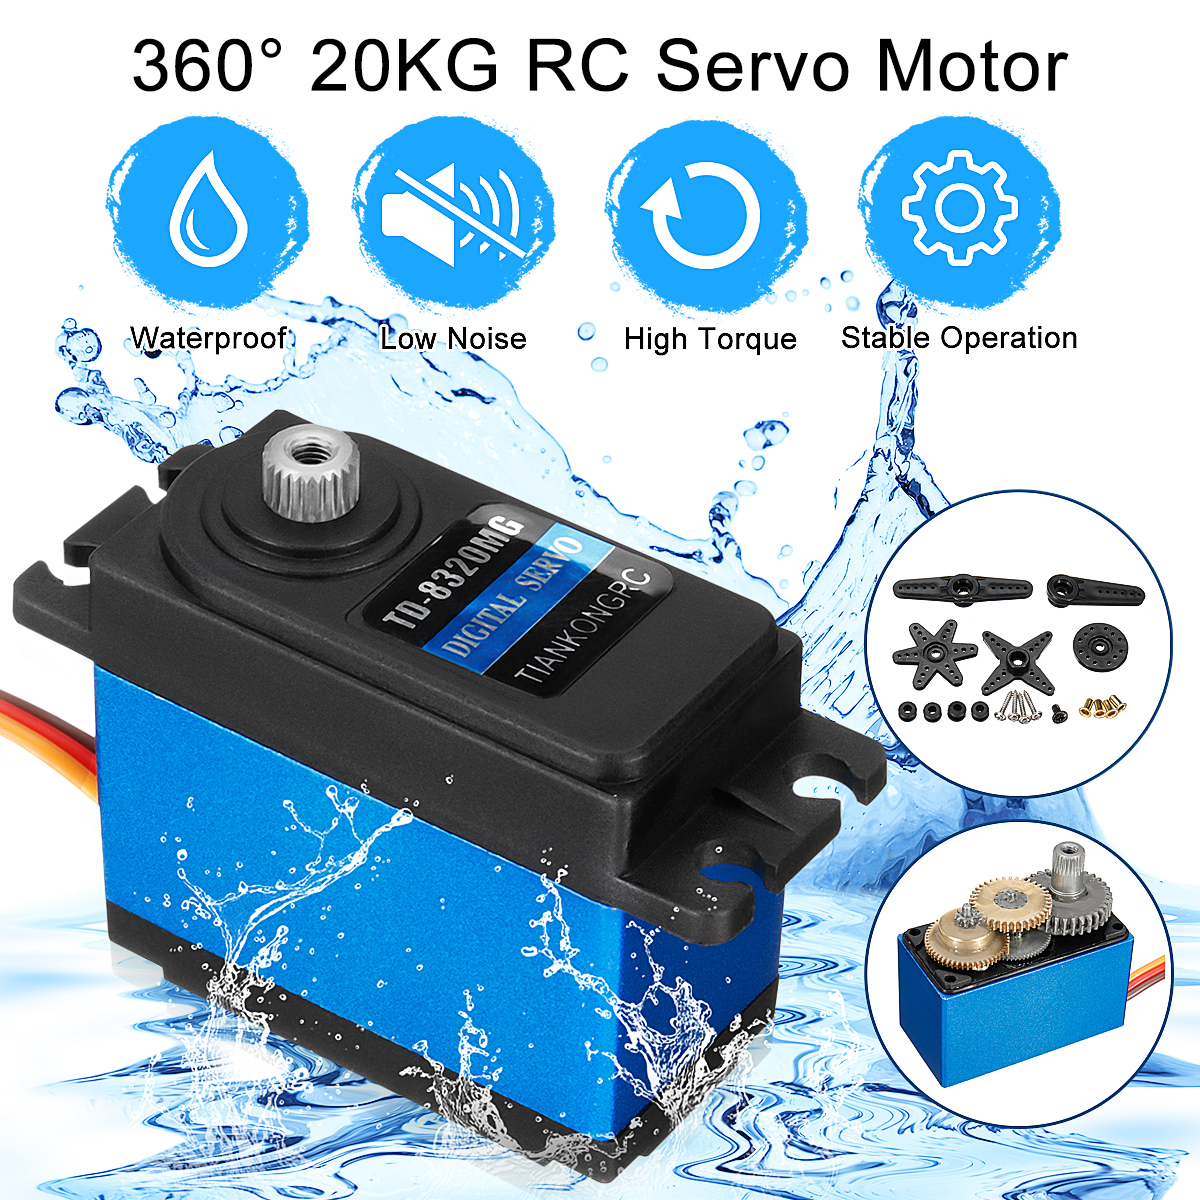 2019New Arrival Waterproof Version High Torque Metal Gear RC Servo Motor 20KG 360 Degree For RC Vehicle Car Boat Toys